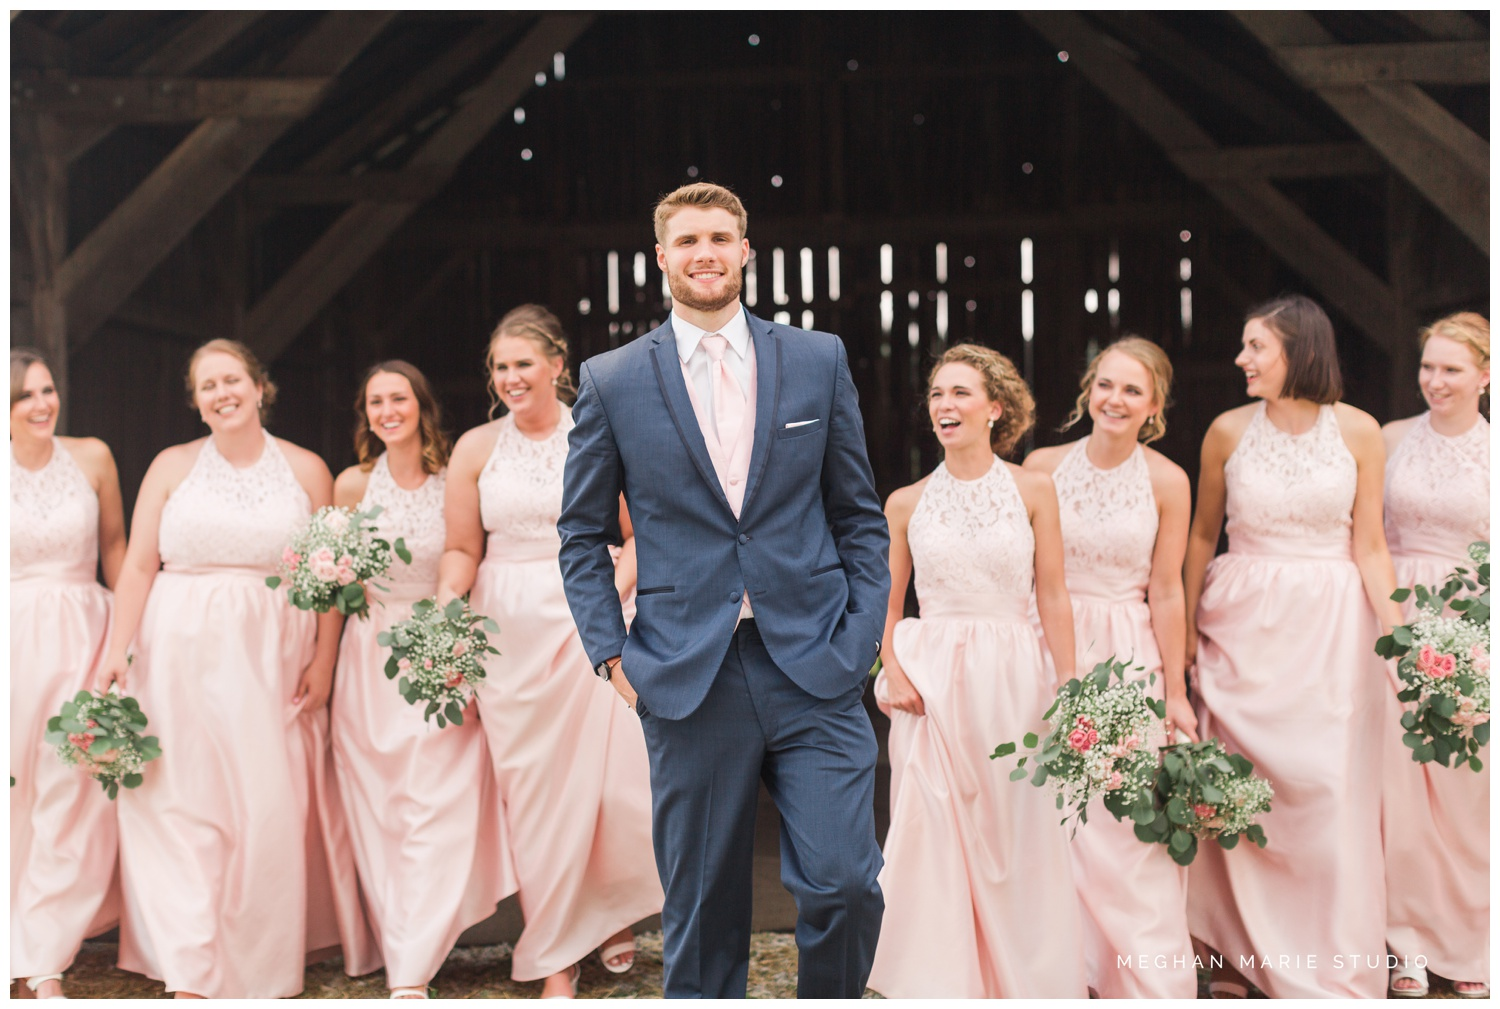 meghan marie studio ohio wedding kyle ahrens msu michigan state basketball spartans navy blush rustic barn soft warm bright bubbles catholic church_0387B.jpg